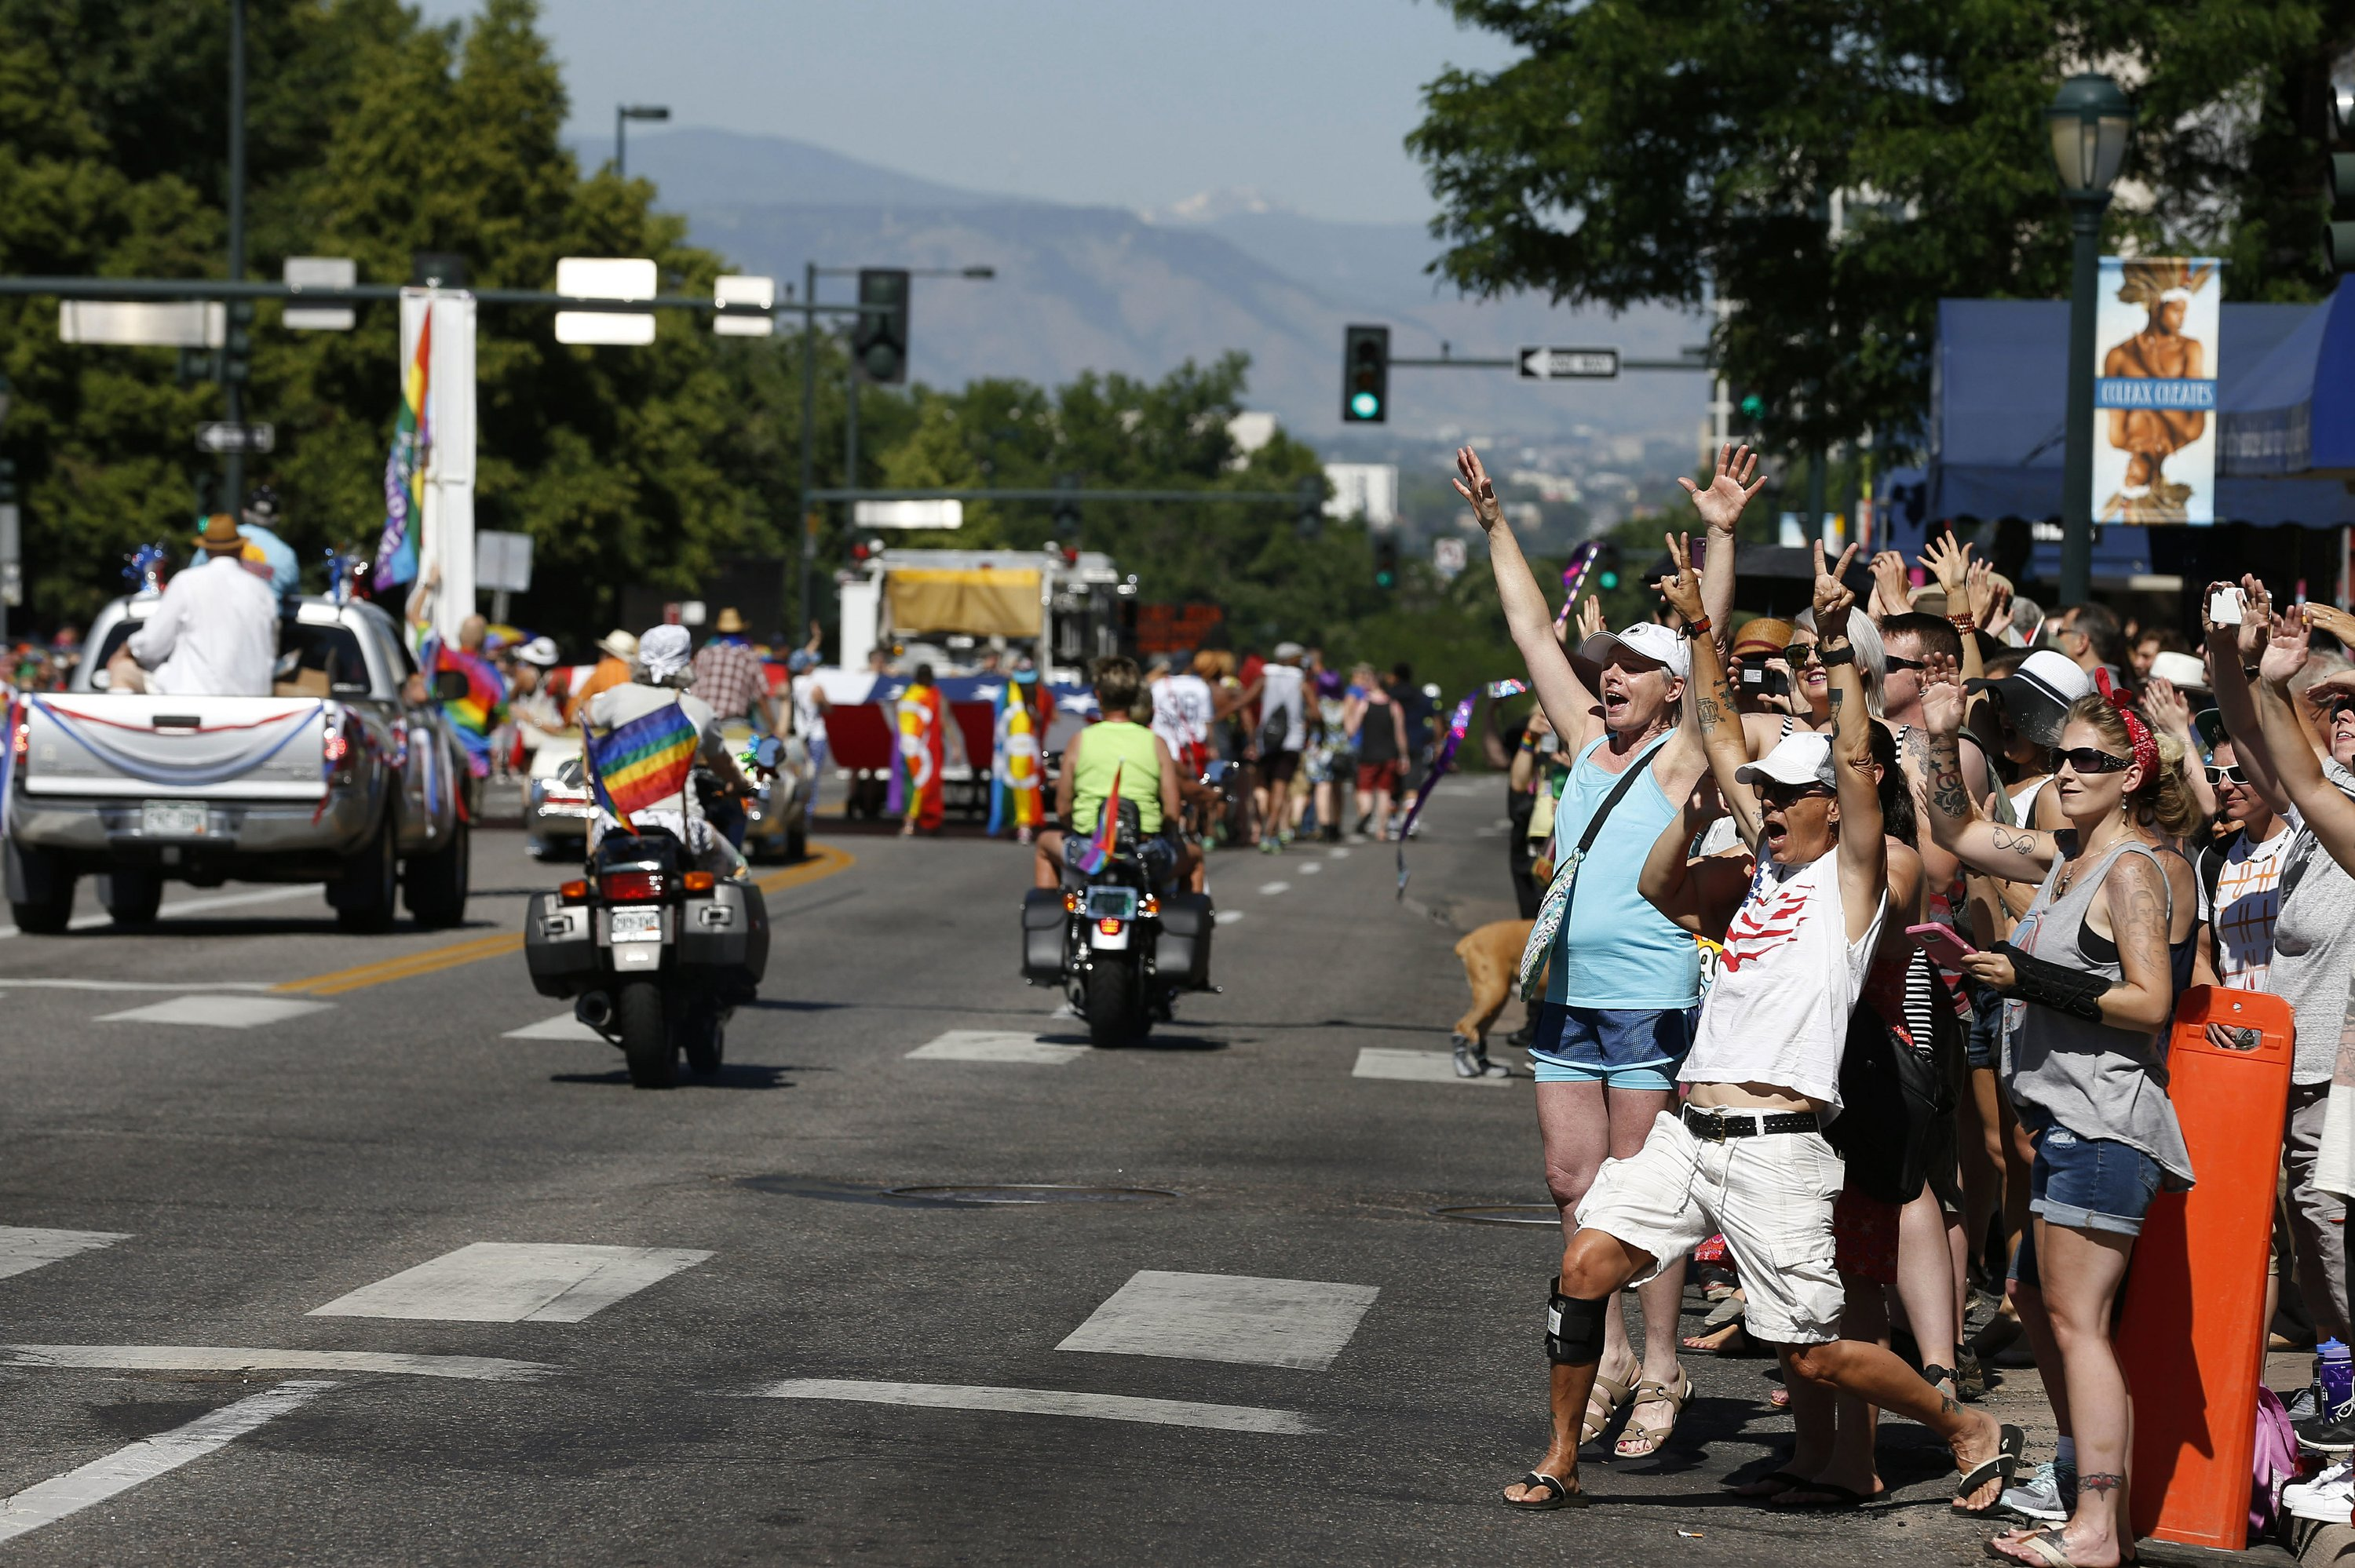 Thousands turn out for weekend gay pride events